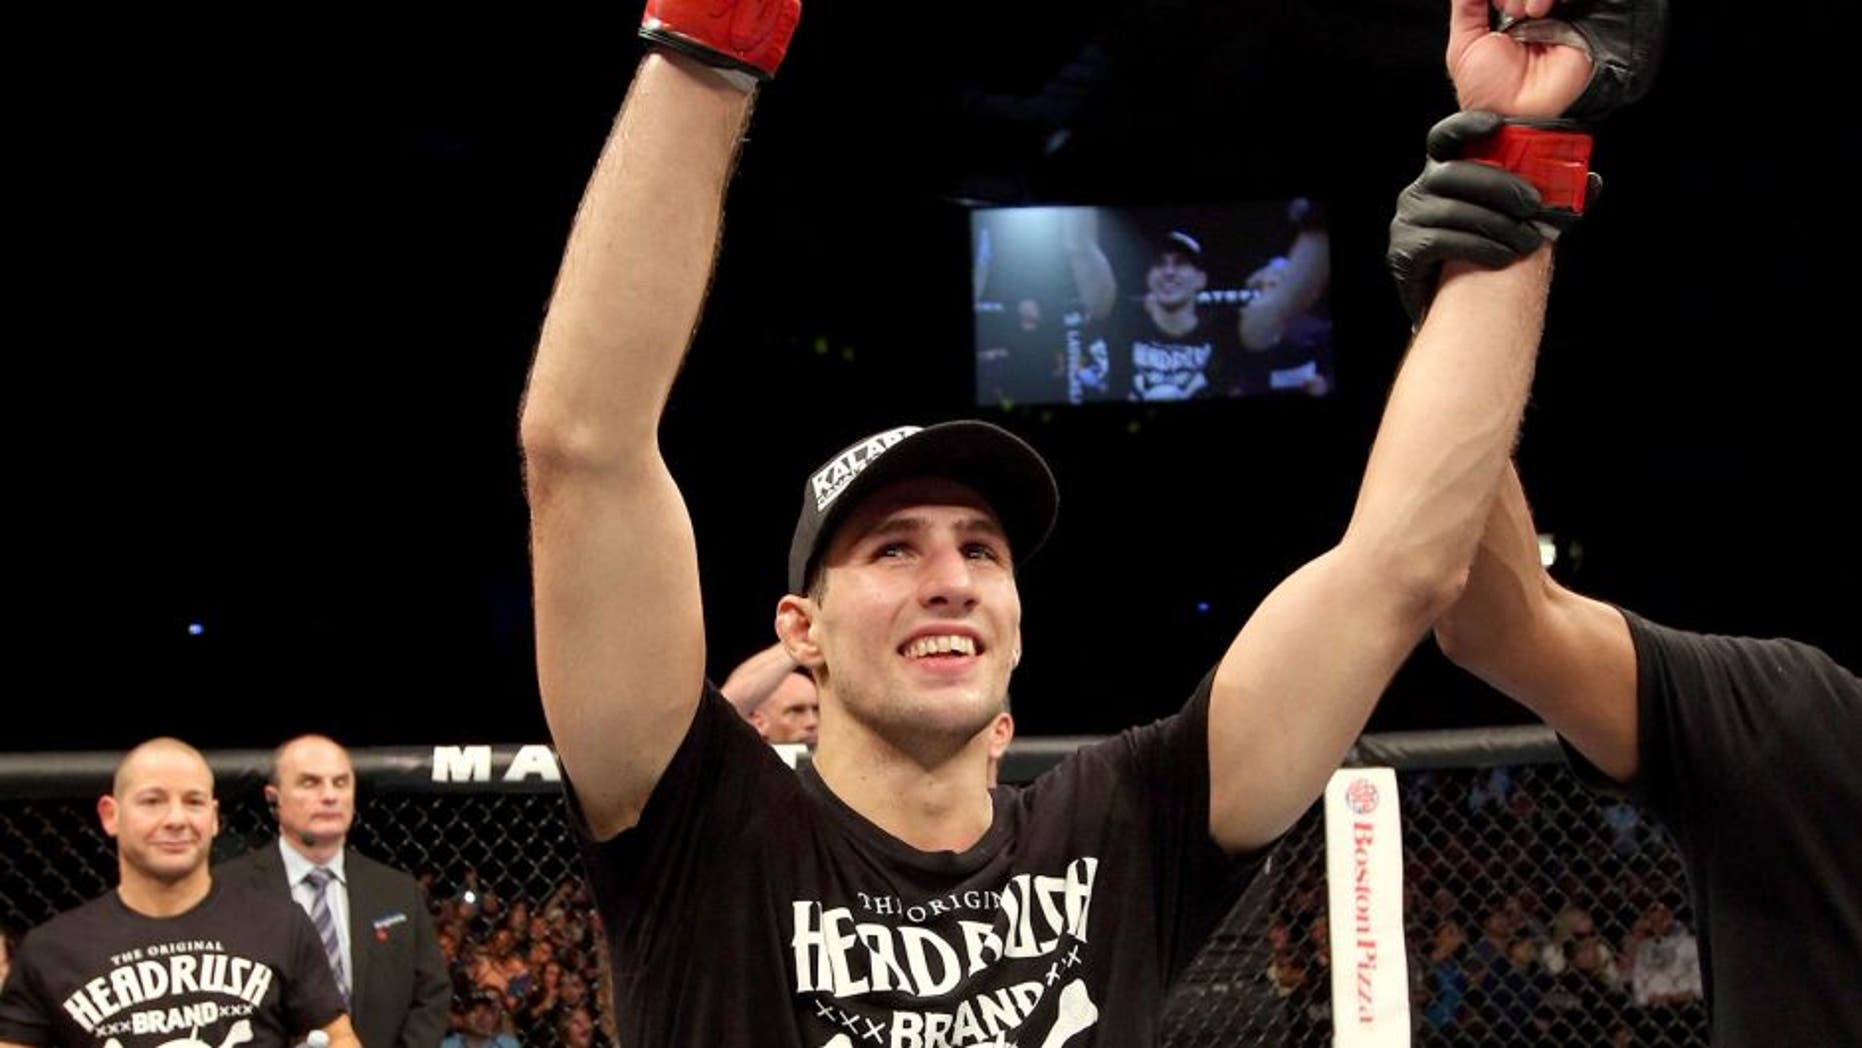 HALIFAX, NS - OCTOBER 4: Rory MacDonald of Canada celebrates after defeating Tarec Saffiedine of Belgium in their welterweight bout at the Scotiabank Centre on October 4, 2014 in Halifax, Nova Scotia, Canada. (Photo by Nick Laham/Zuffa LLC/Zuffa LLC via Getty Images)